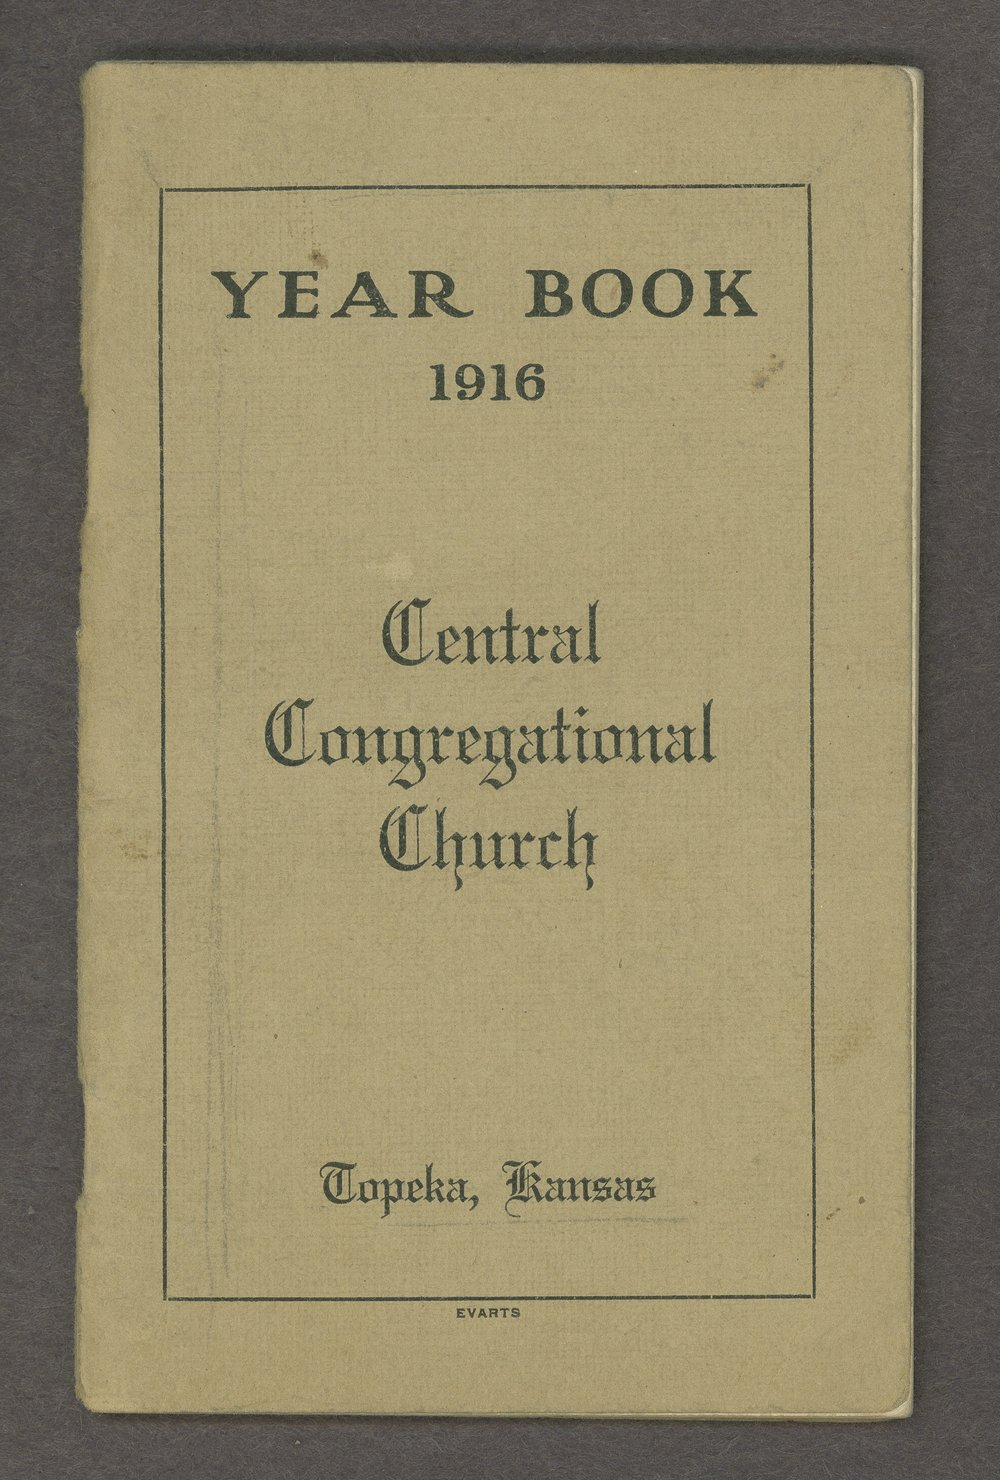 Central Congregational Church yearbooks - Front Cover [1916]